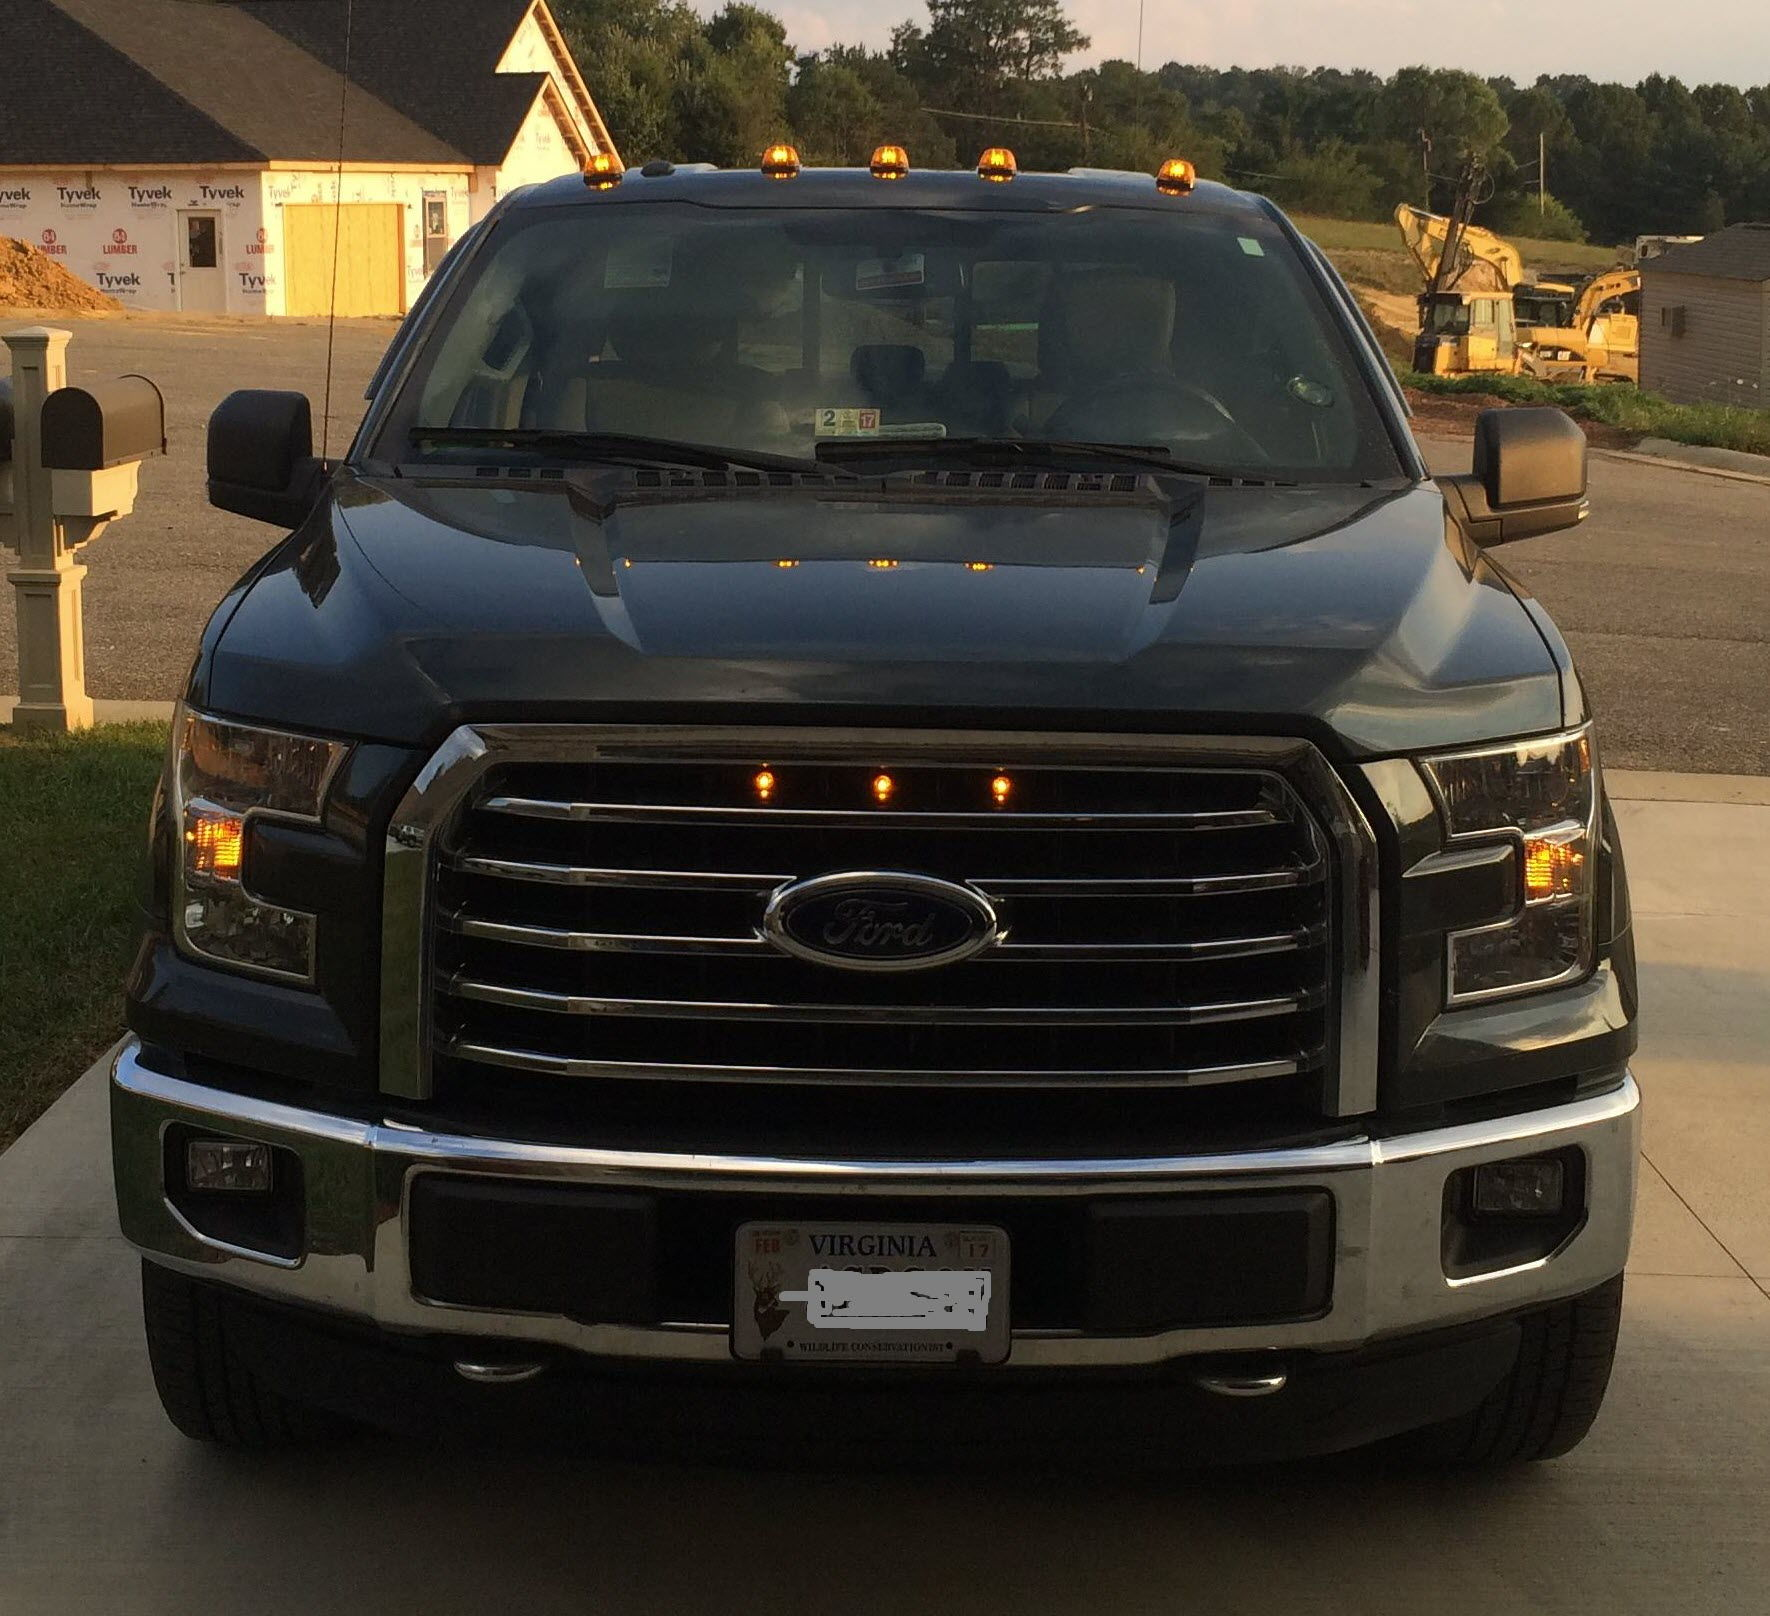 Here Is My 2015 F150 With Raptor Grille Lights And LED Roof Marker Lights.